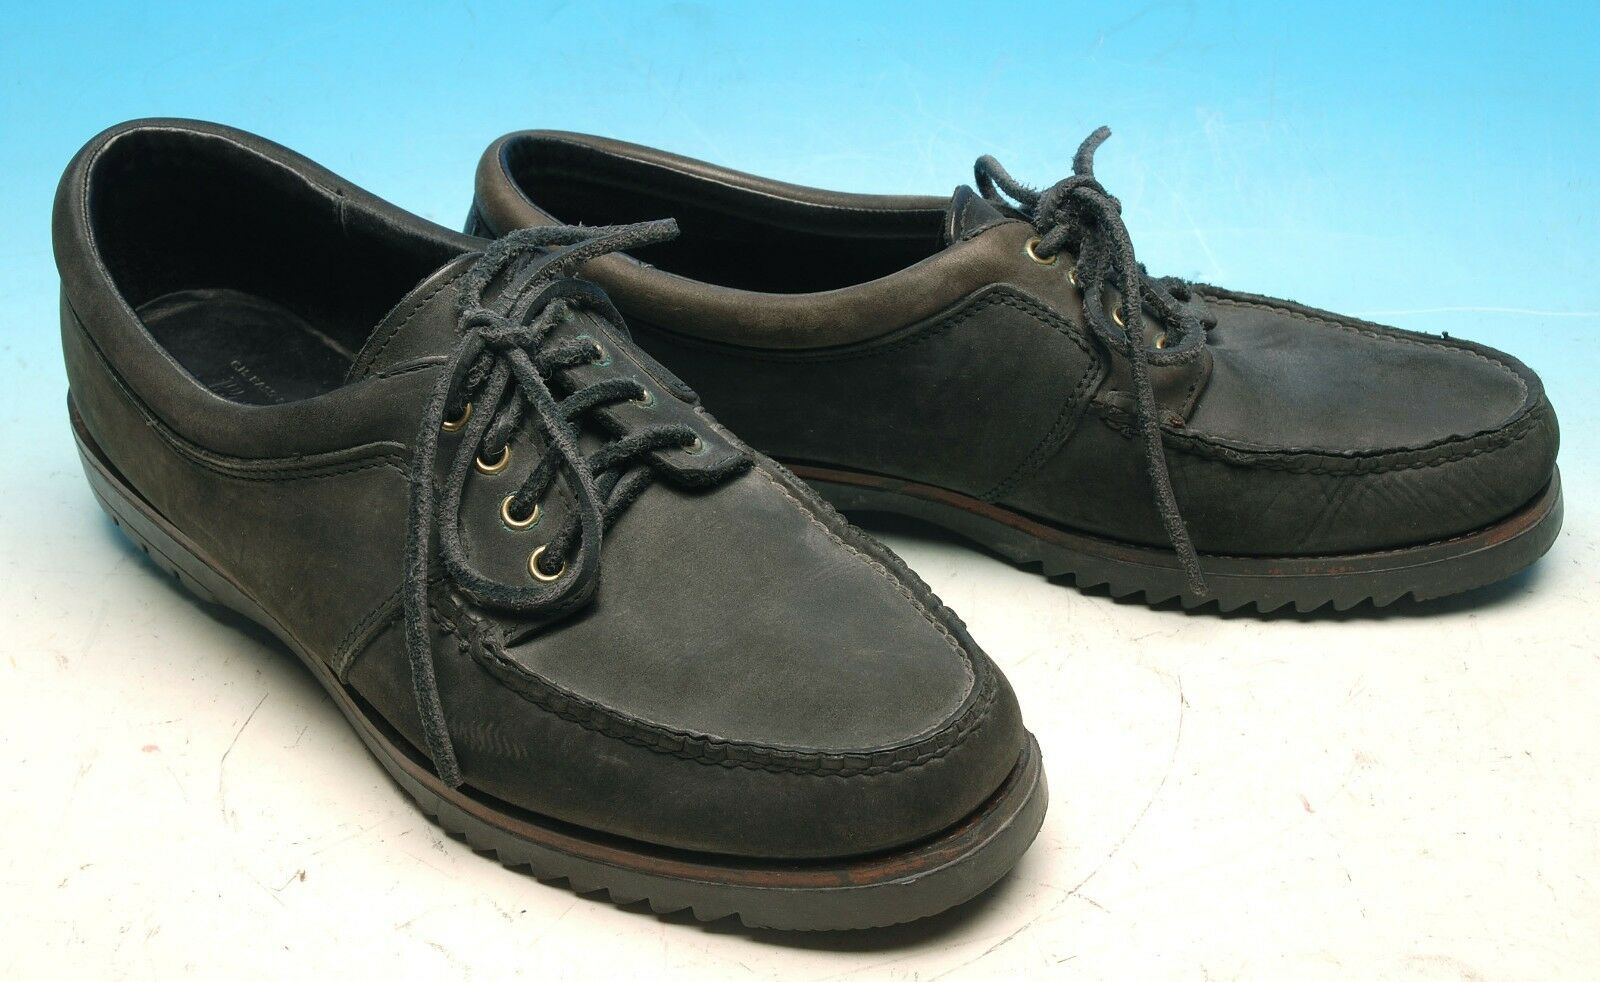 G H BASS & CO 1829 BLACK NUBUCK CASUAL SZ OXFORDS BOAT SHOES MENS SZ CASUAL 12 M GREAT 76bf1b